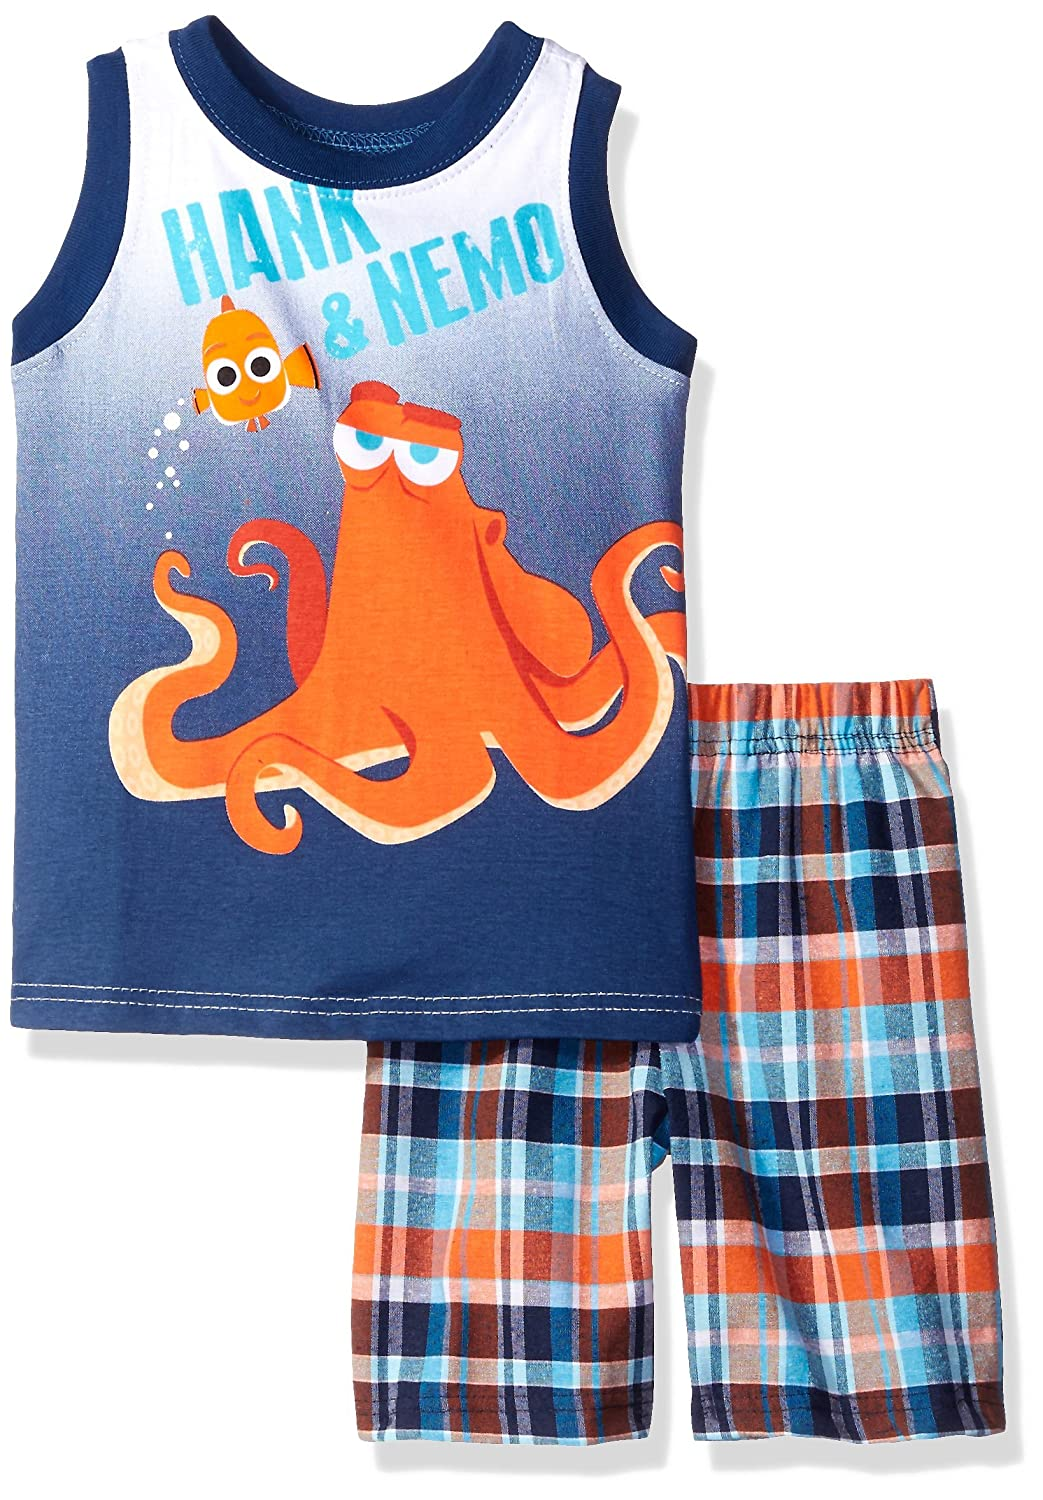 Disney Boys' 2 Piece Finding Dory Hank and Nemo Plaid Muscle Tee Short Set 535